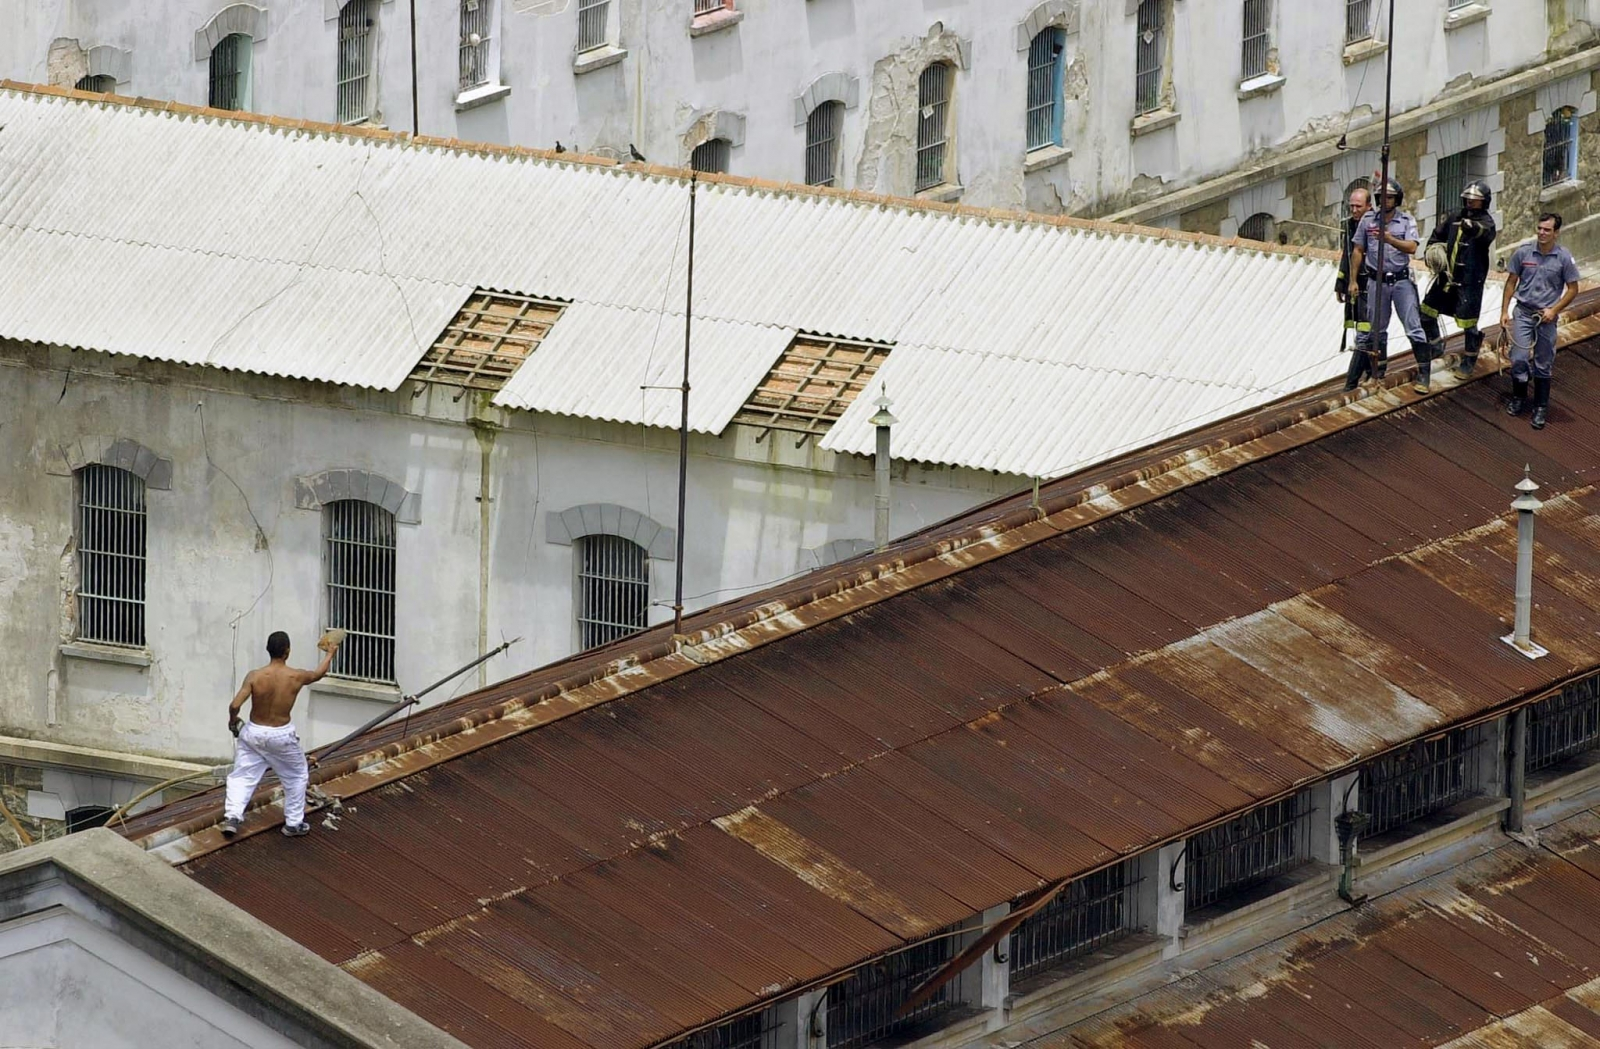 Brazil's prisons are massively overcrowded, leading to riots by inmates seeking better living conditions